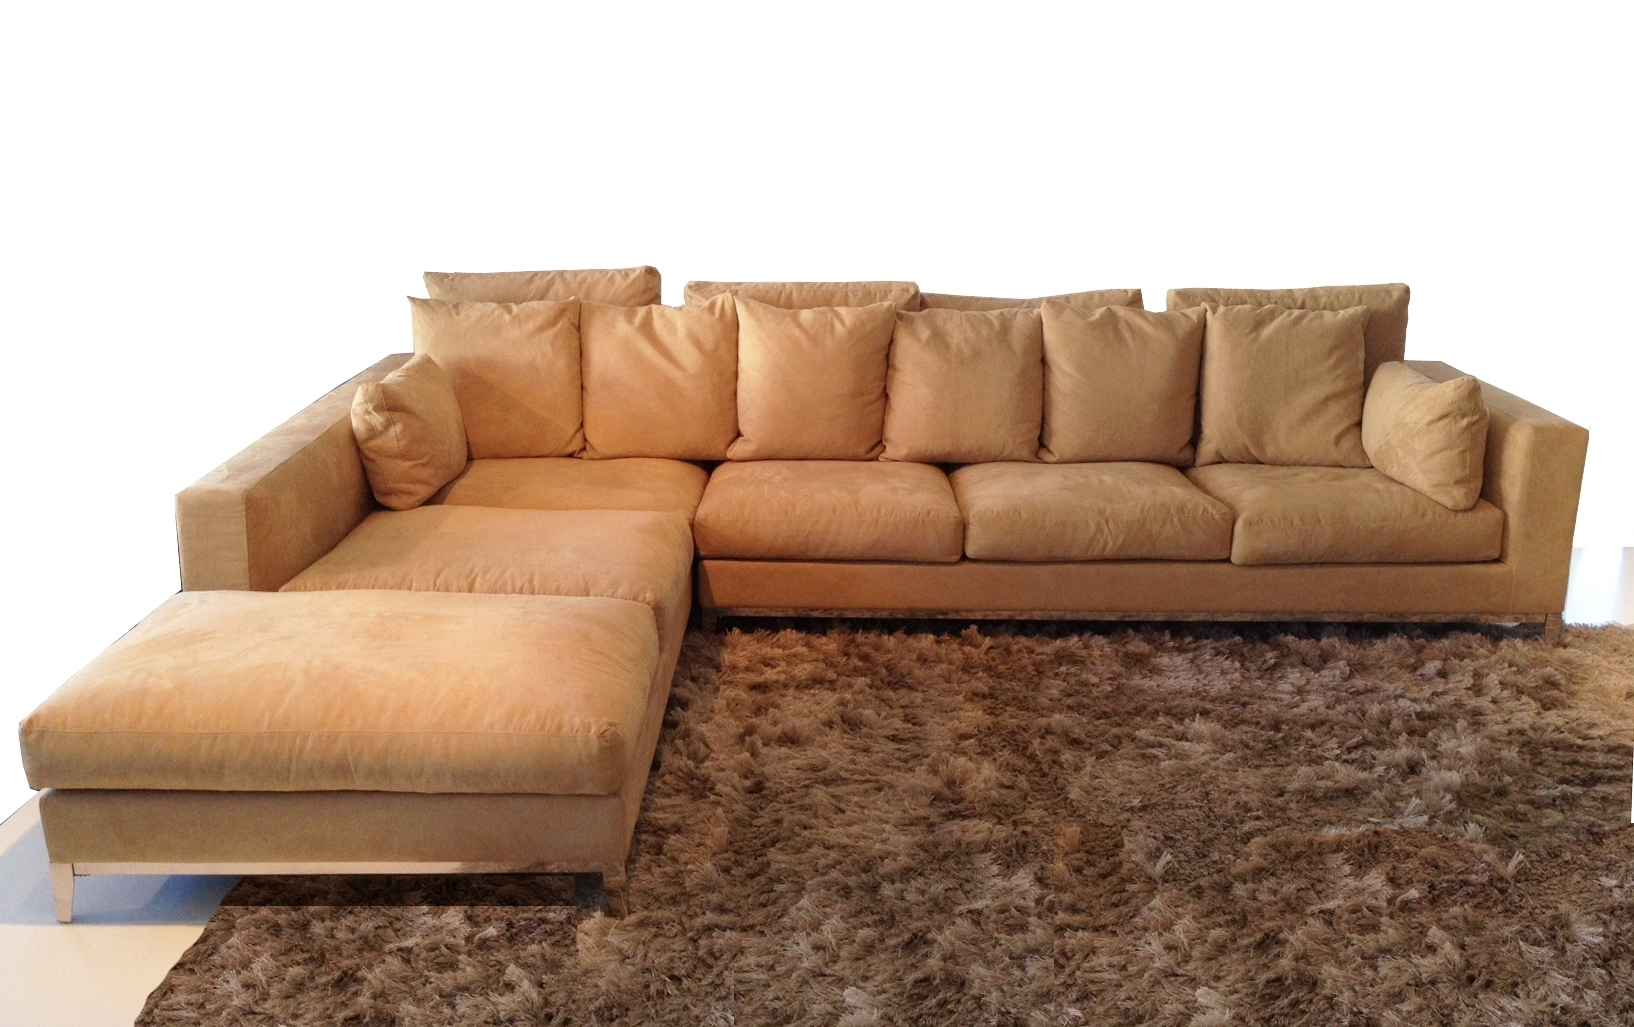 Sectional Sofas With Stainless Steel Legs | Modern Furniture Pertaining To Removable Covers Sectional Sofas (View 3 of 10)